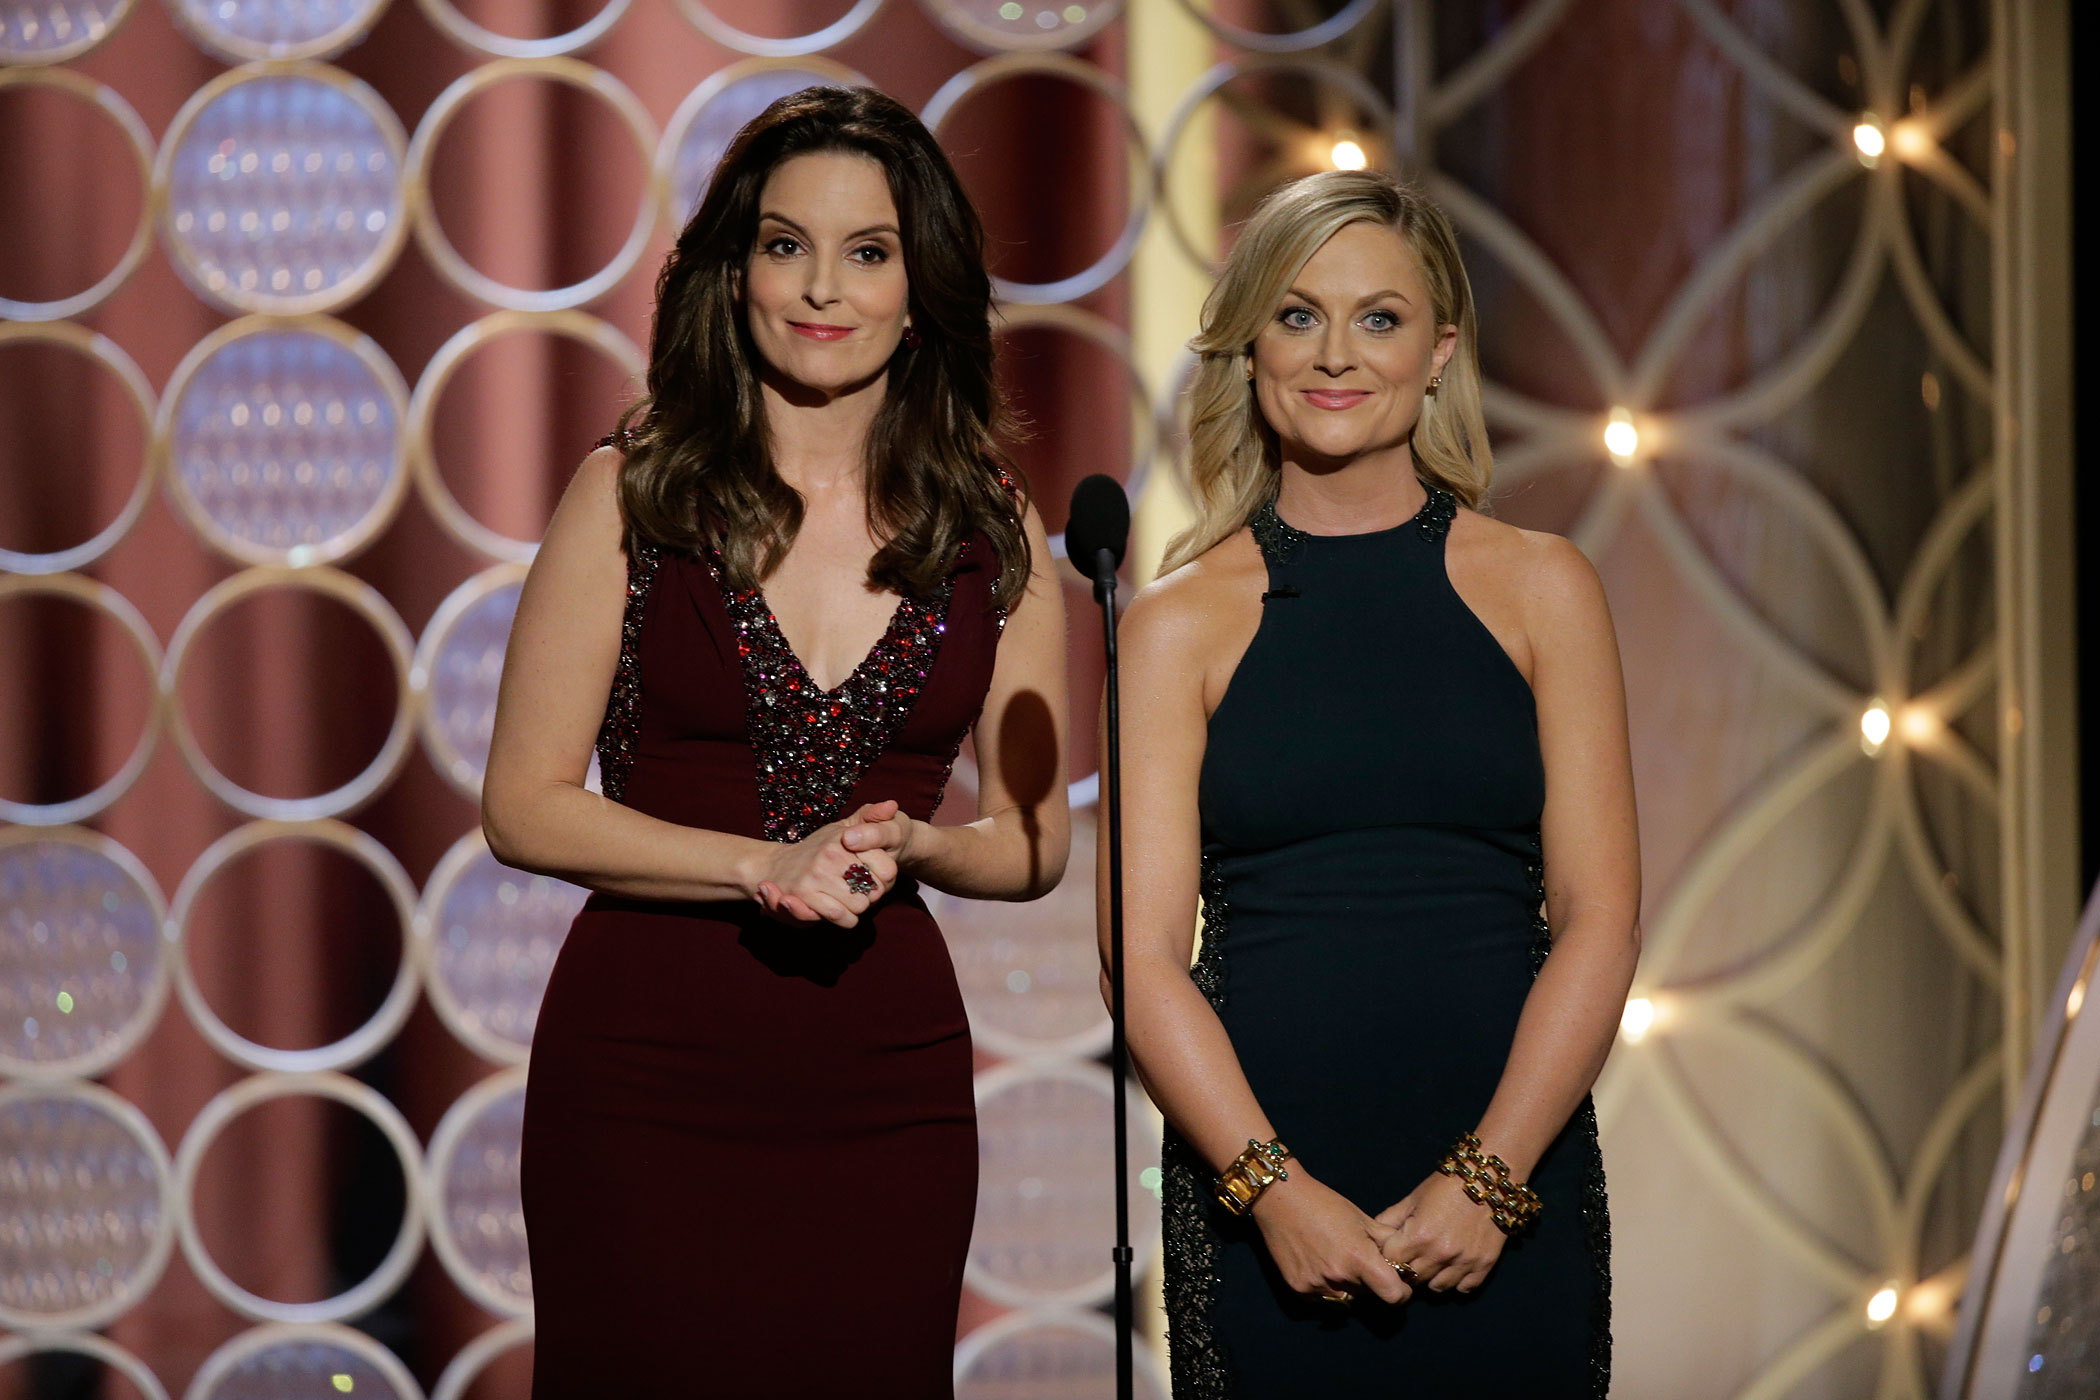 Hosts Tina Fey and Amy Poehler speak onstage during the 71st Annual Golden Globe Award at The Beverly Hilton Hotel on Jan. 12, 2014 in Beverly Hills, Calif.